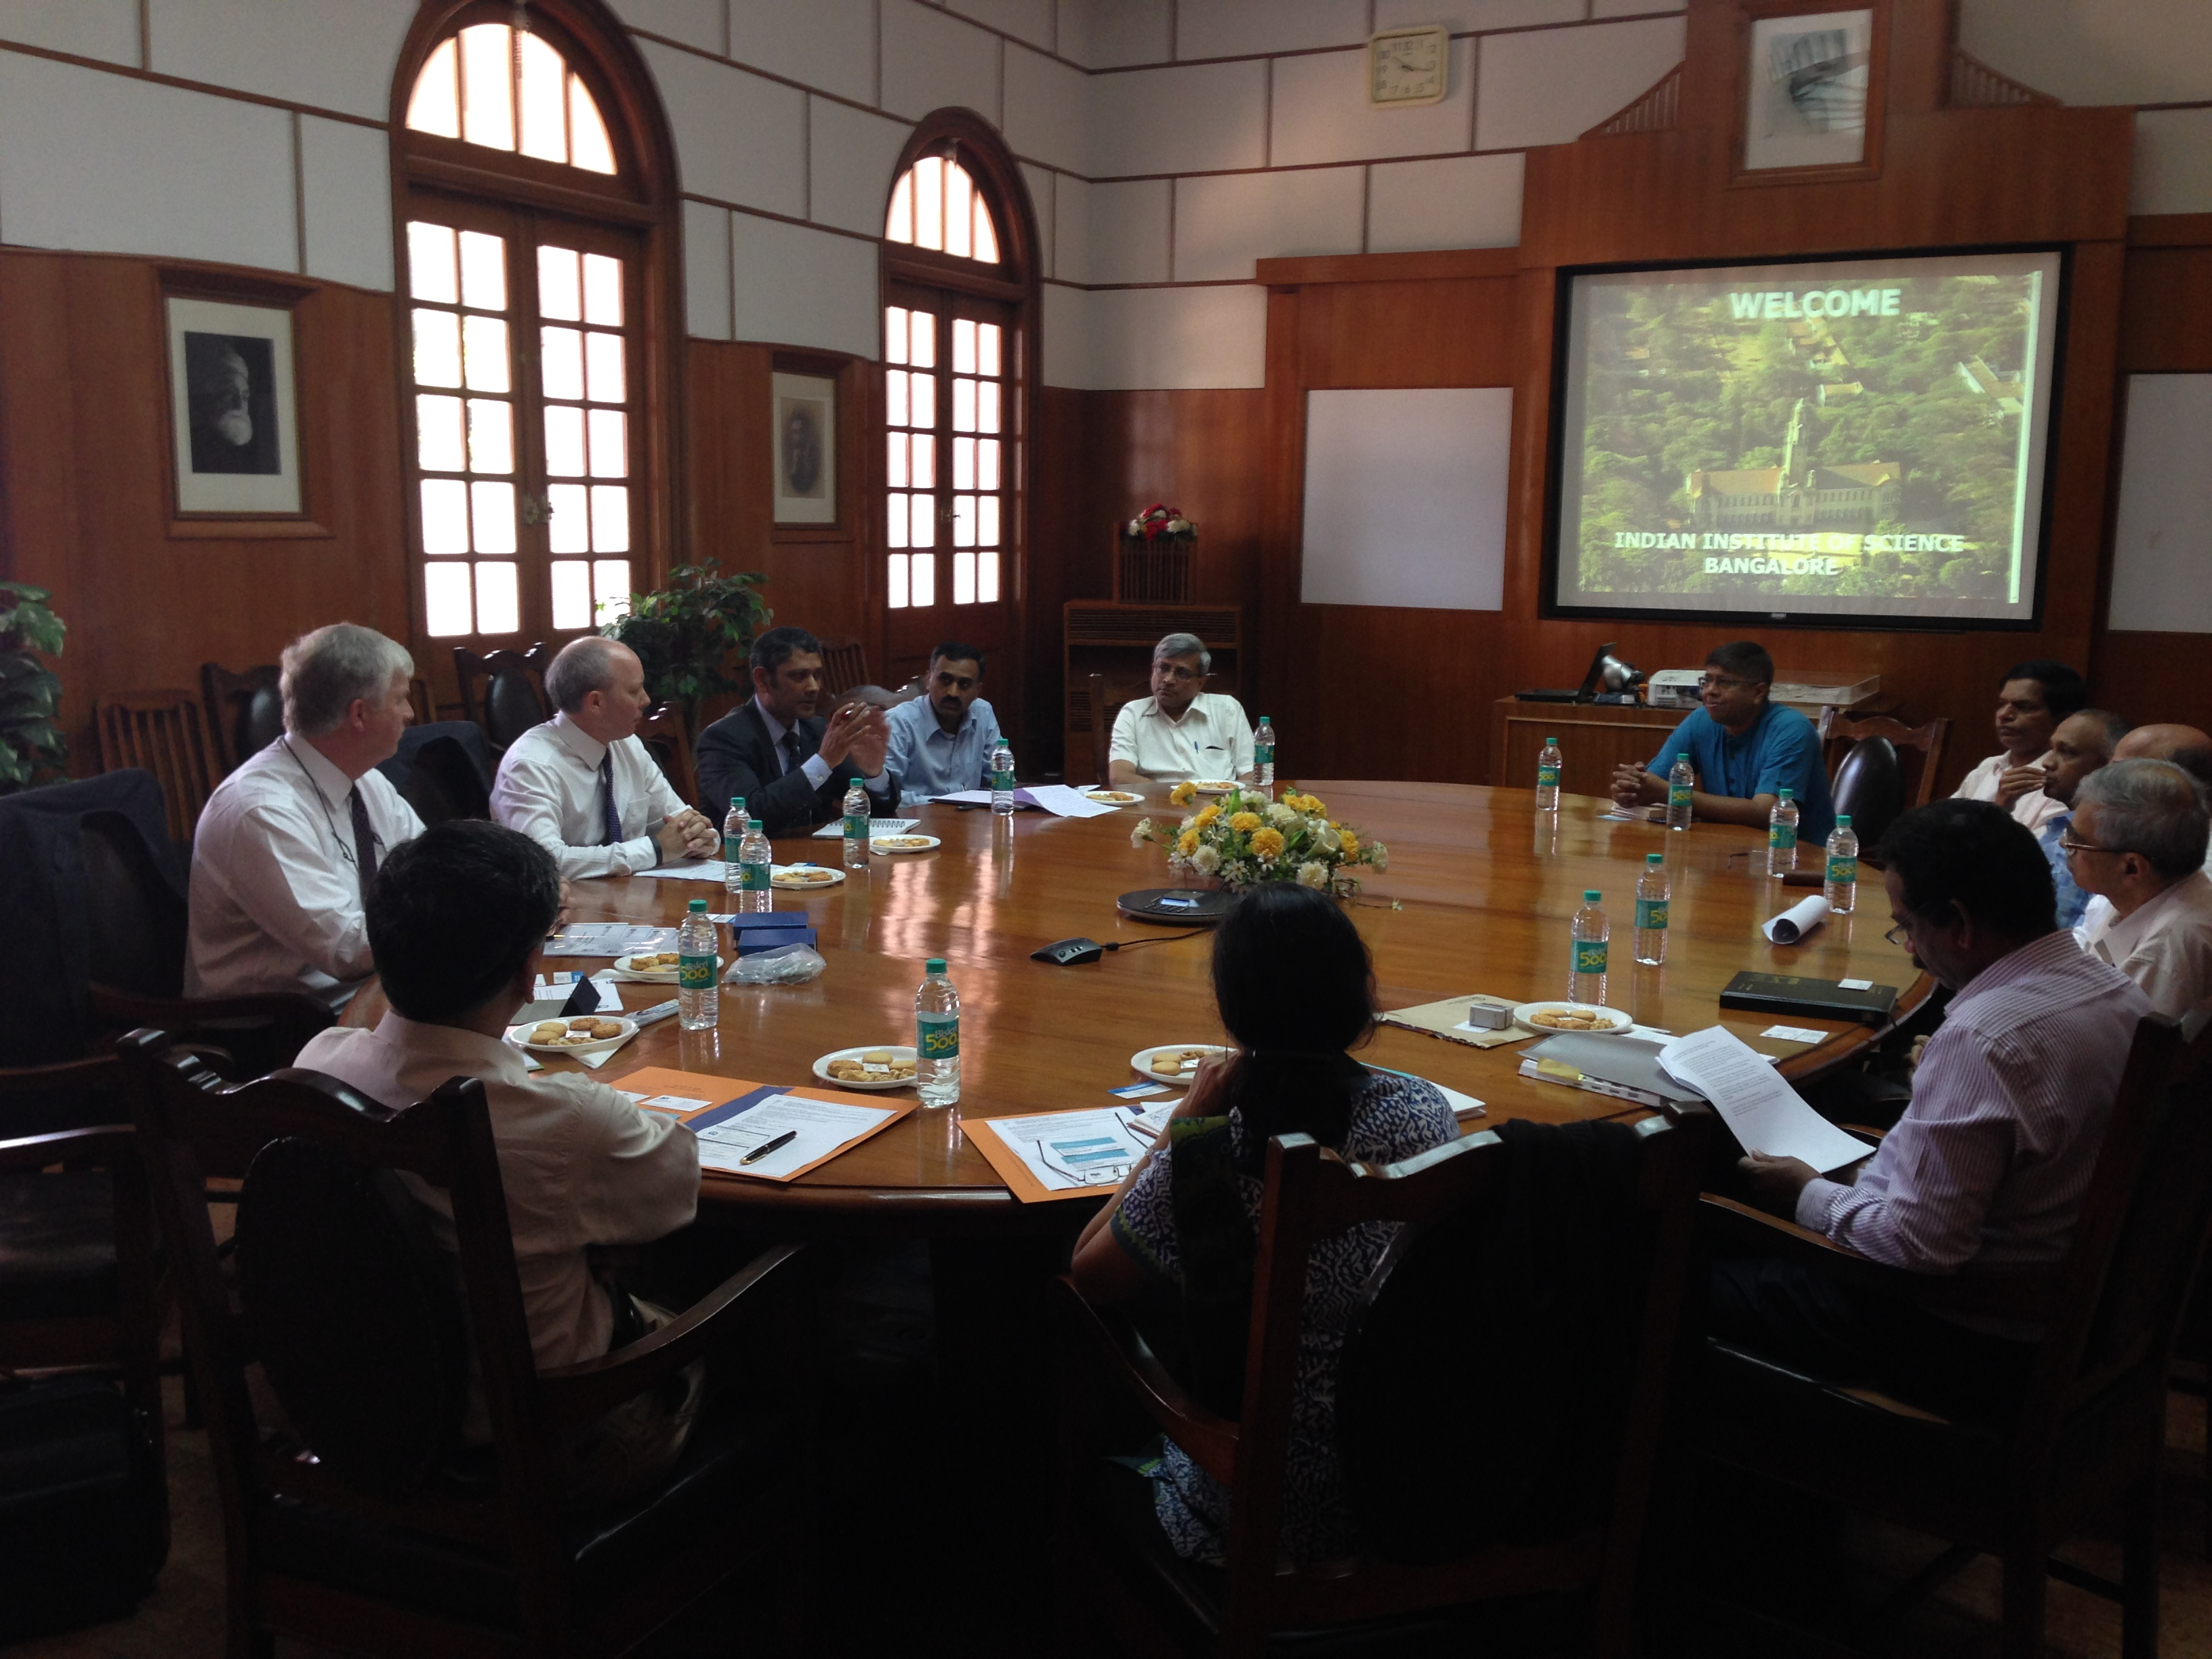 Professor Mark Bailey at the MoU signing event at the Indian Institute of Science